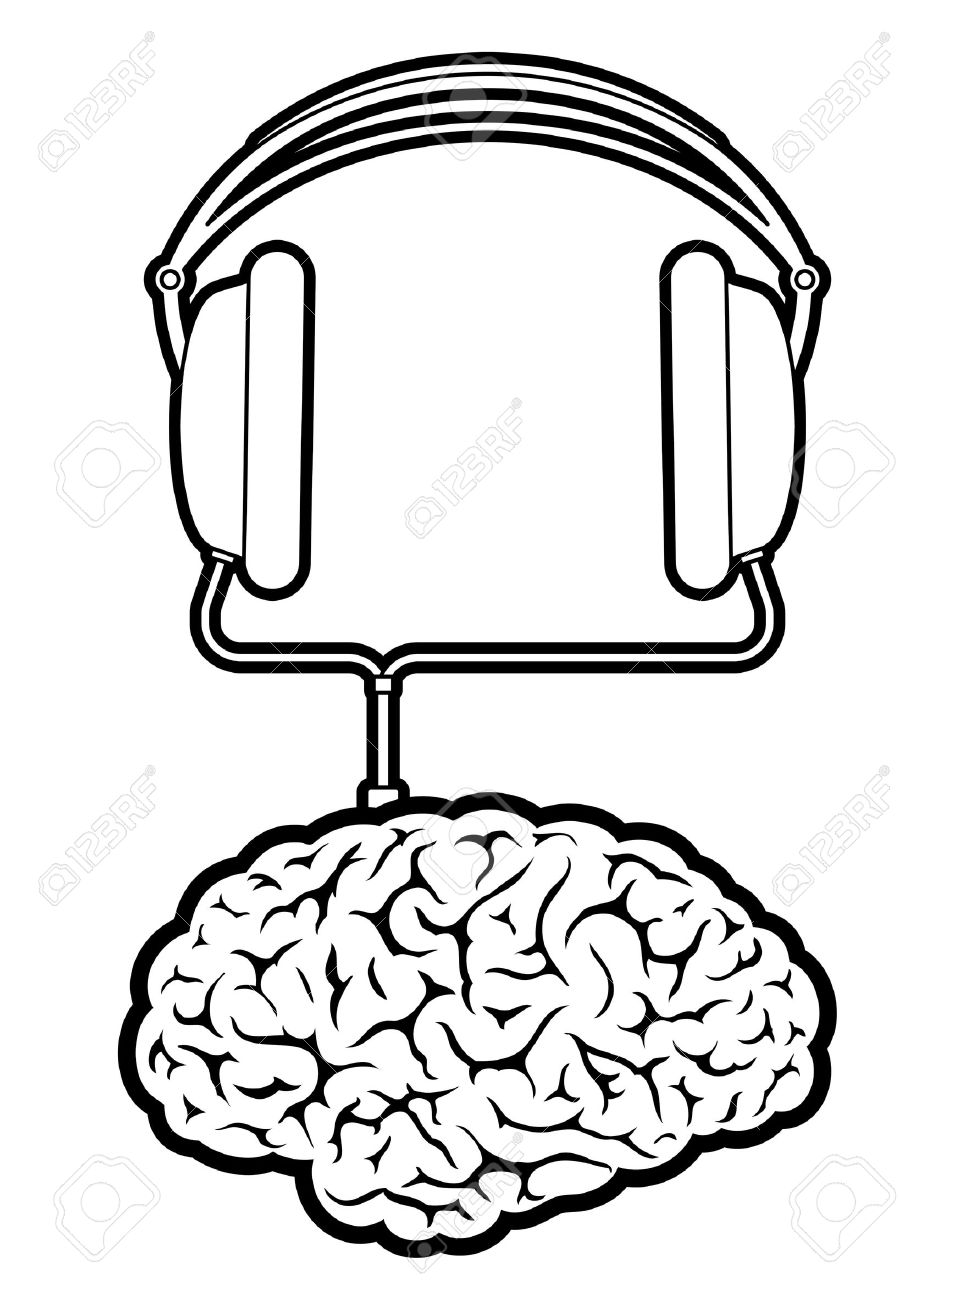 Brain Music Player With Headphones Royalty Free Cliparts, Vectors.